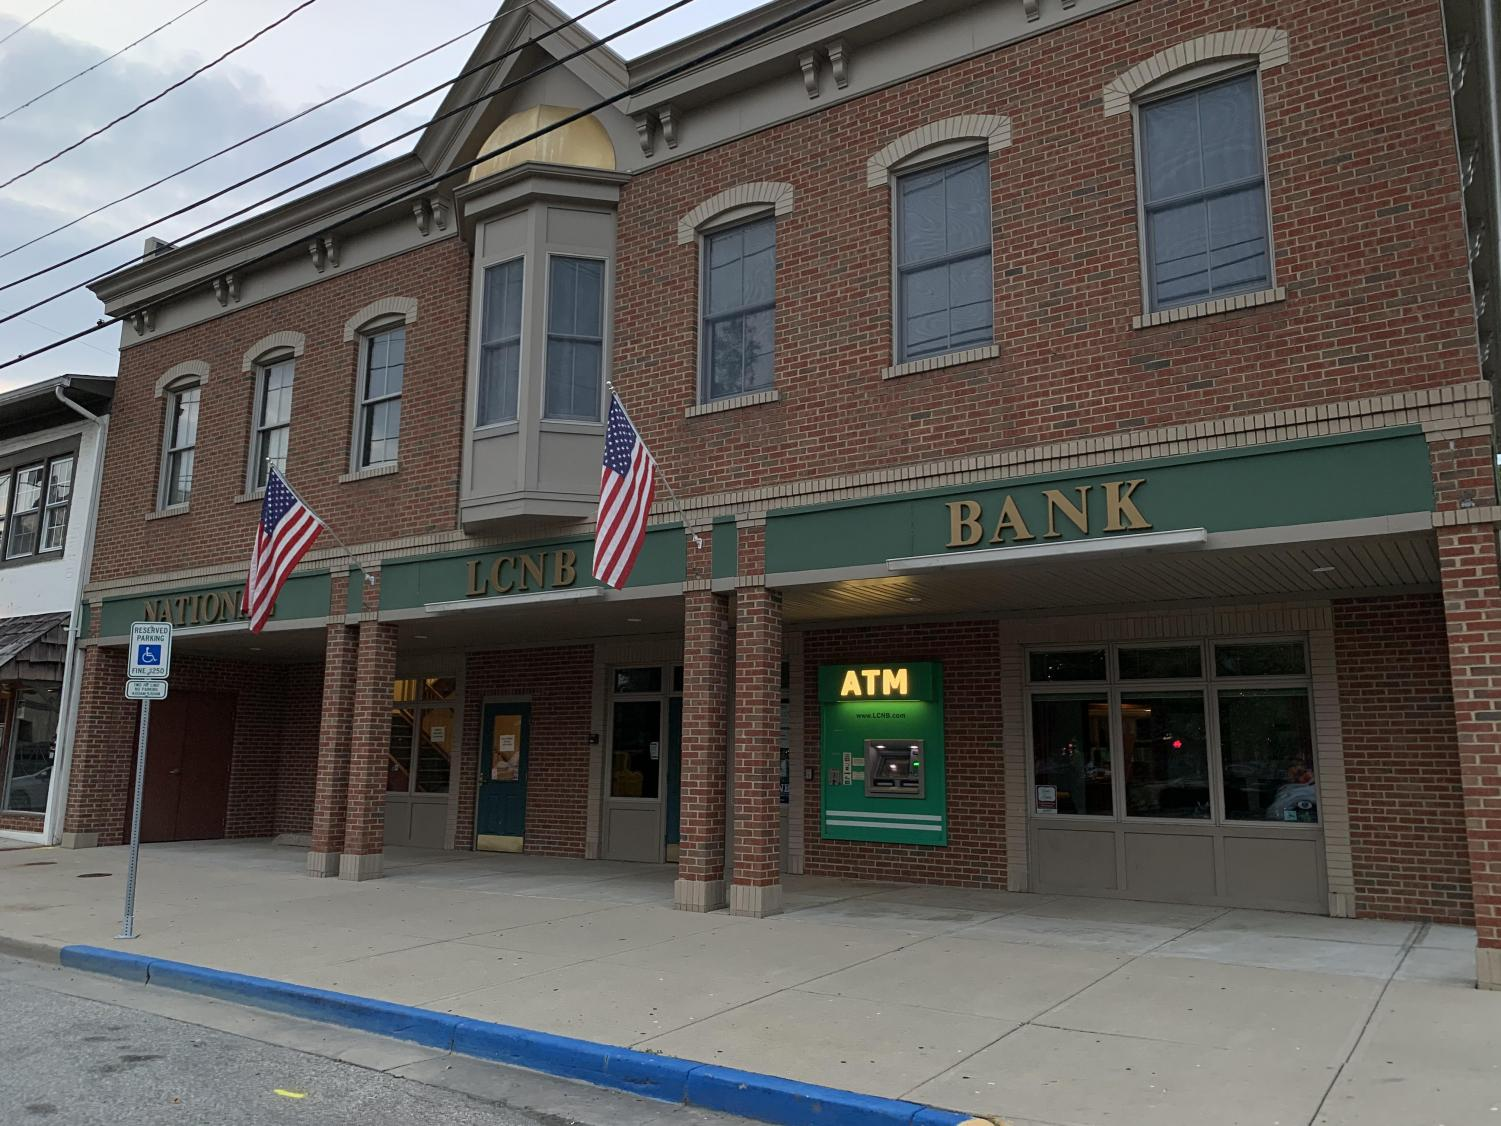 The LCNB bank building is a proposed location for public restrooms